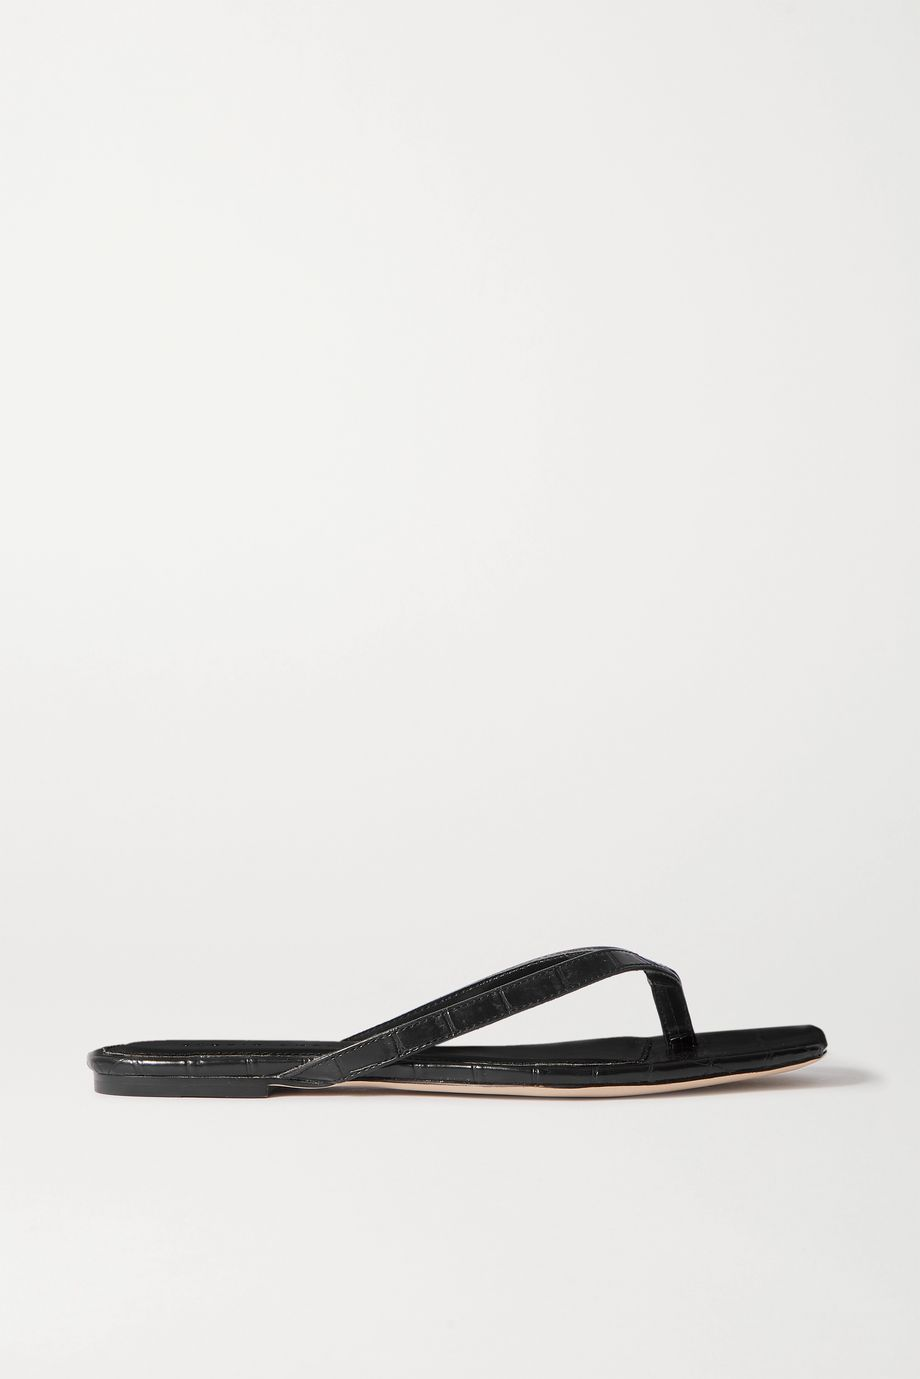 STUDIO AMELIA 2.2 croc-effect vegan leather flip flops